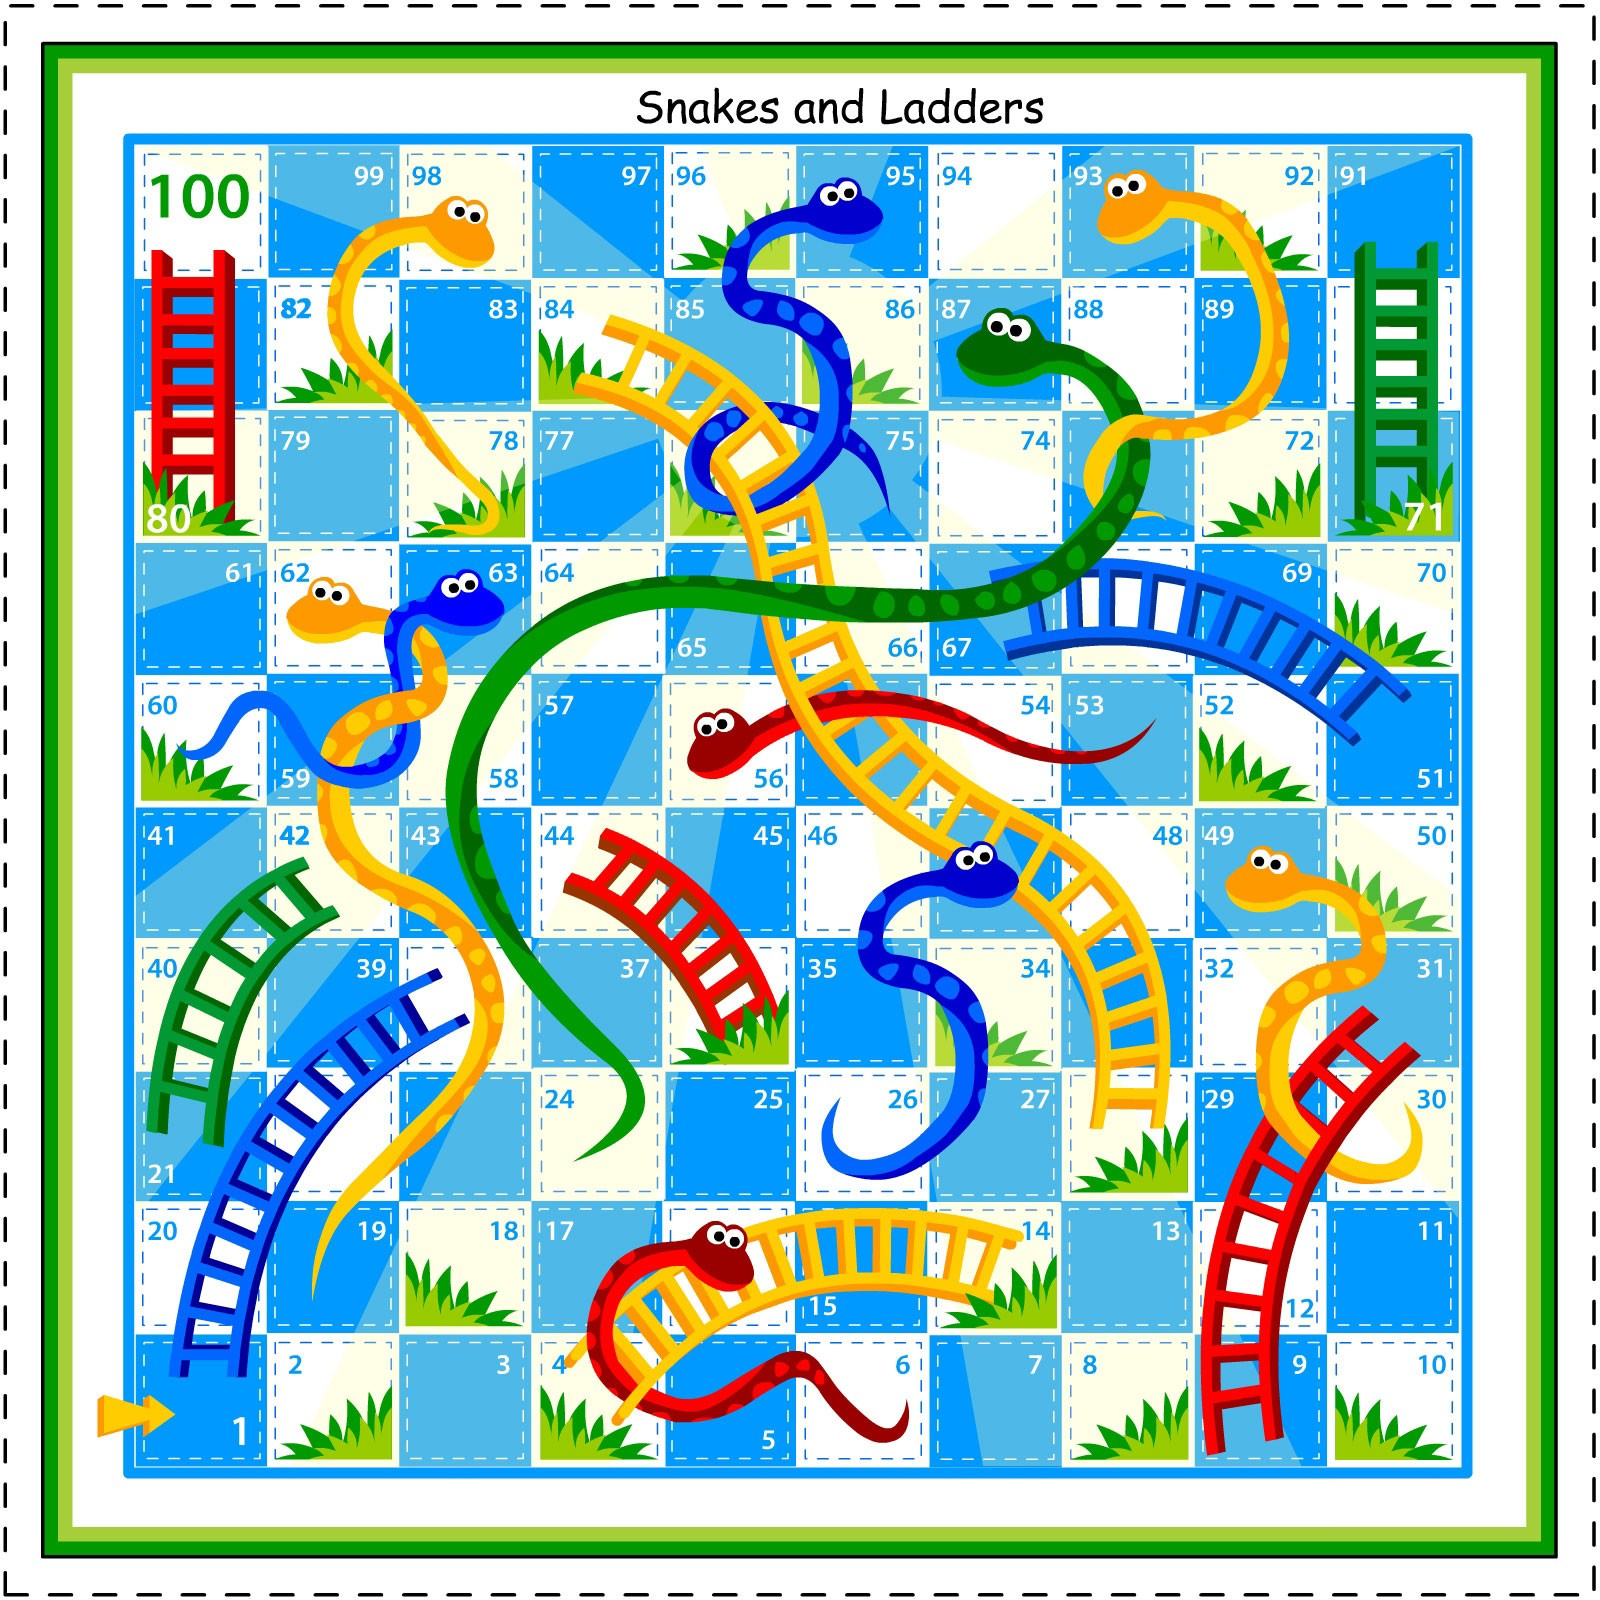 photograph regarding Printable Board Games identified as Printable Board Video games - Great Coloring Internet pages For Little ones